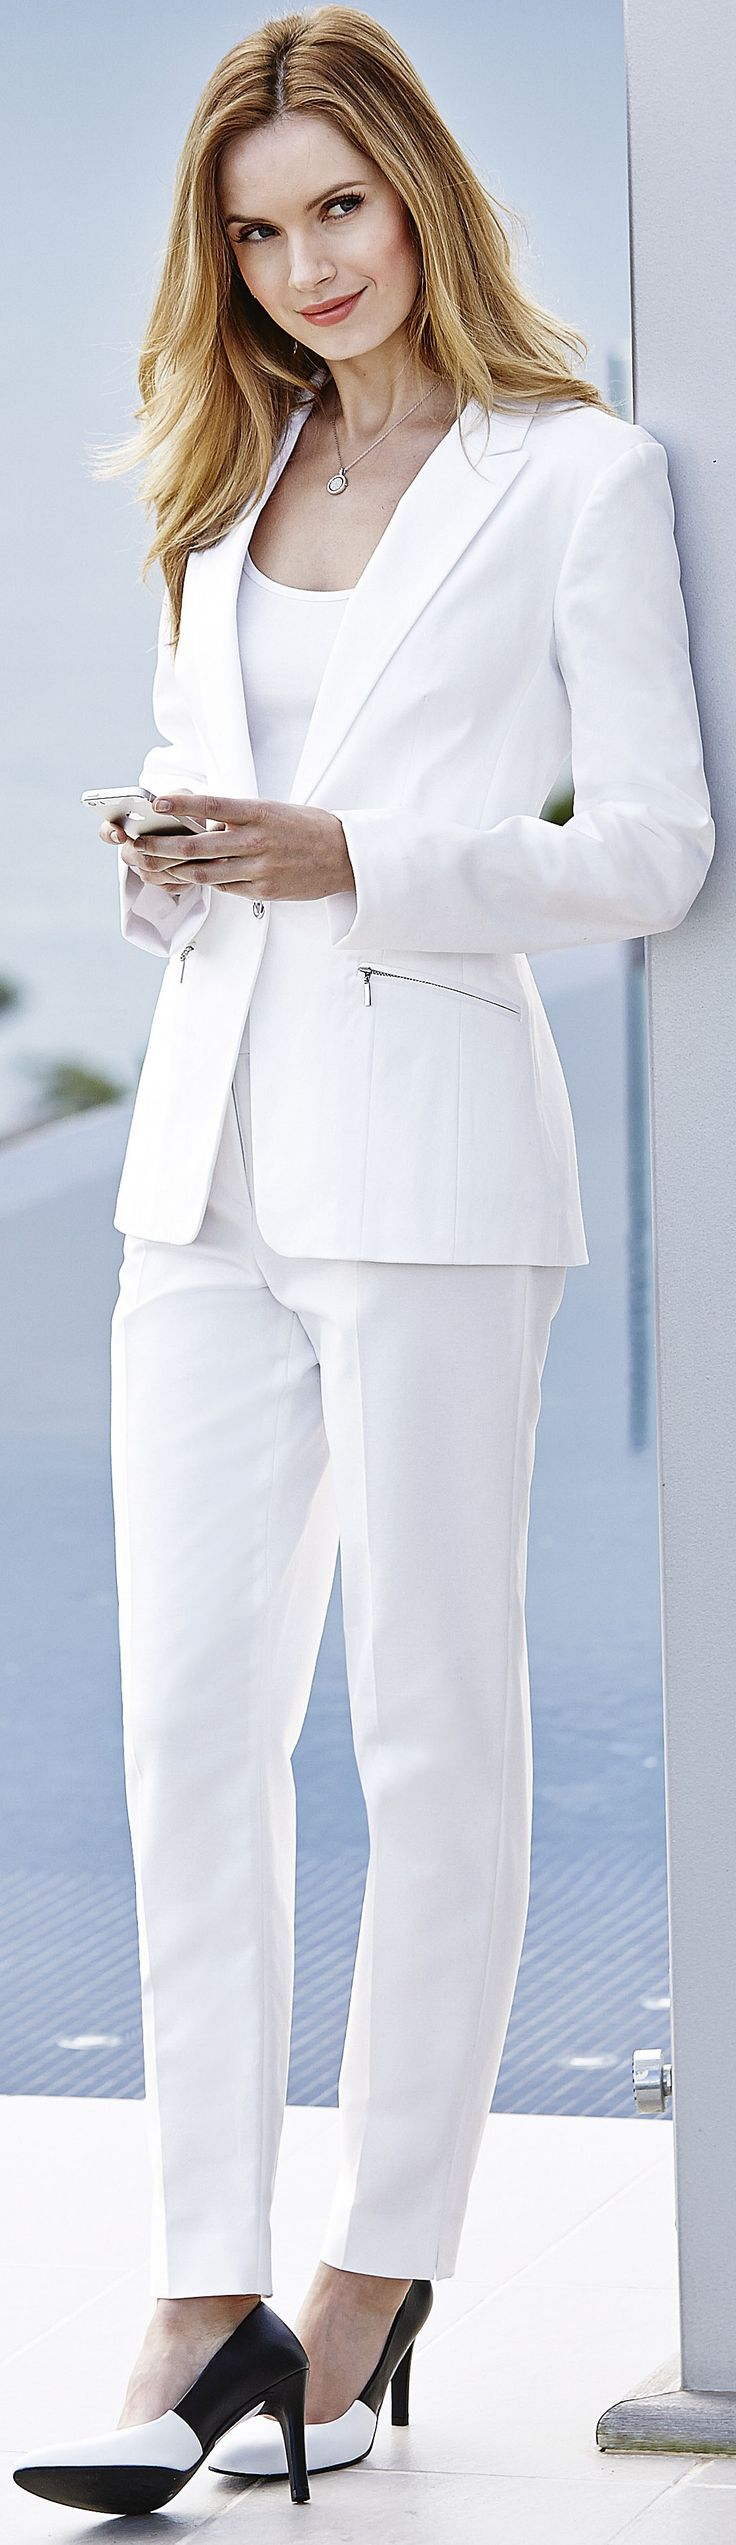 Innovative White Linen Pants Suit For Women With New Inspiration In Singapore U2013 Playzoa.com